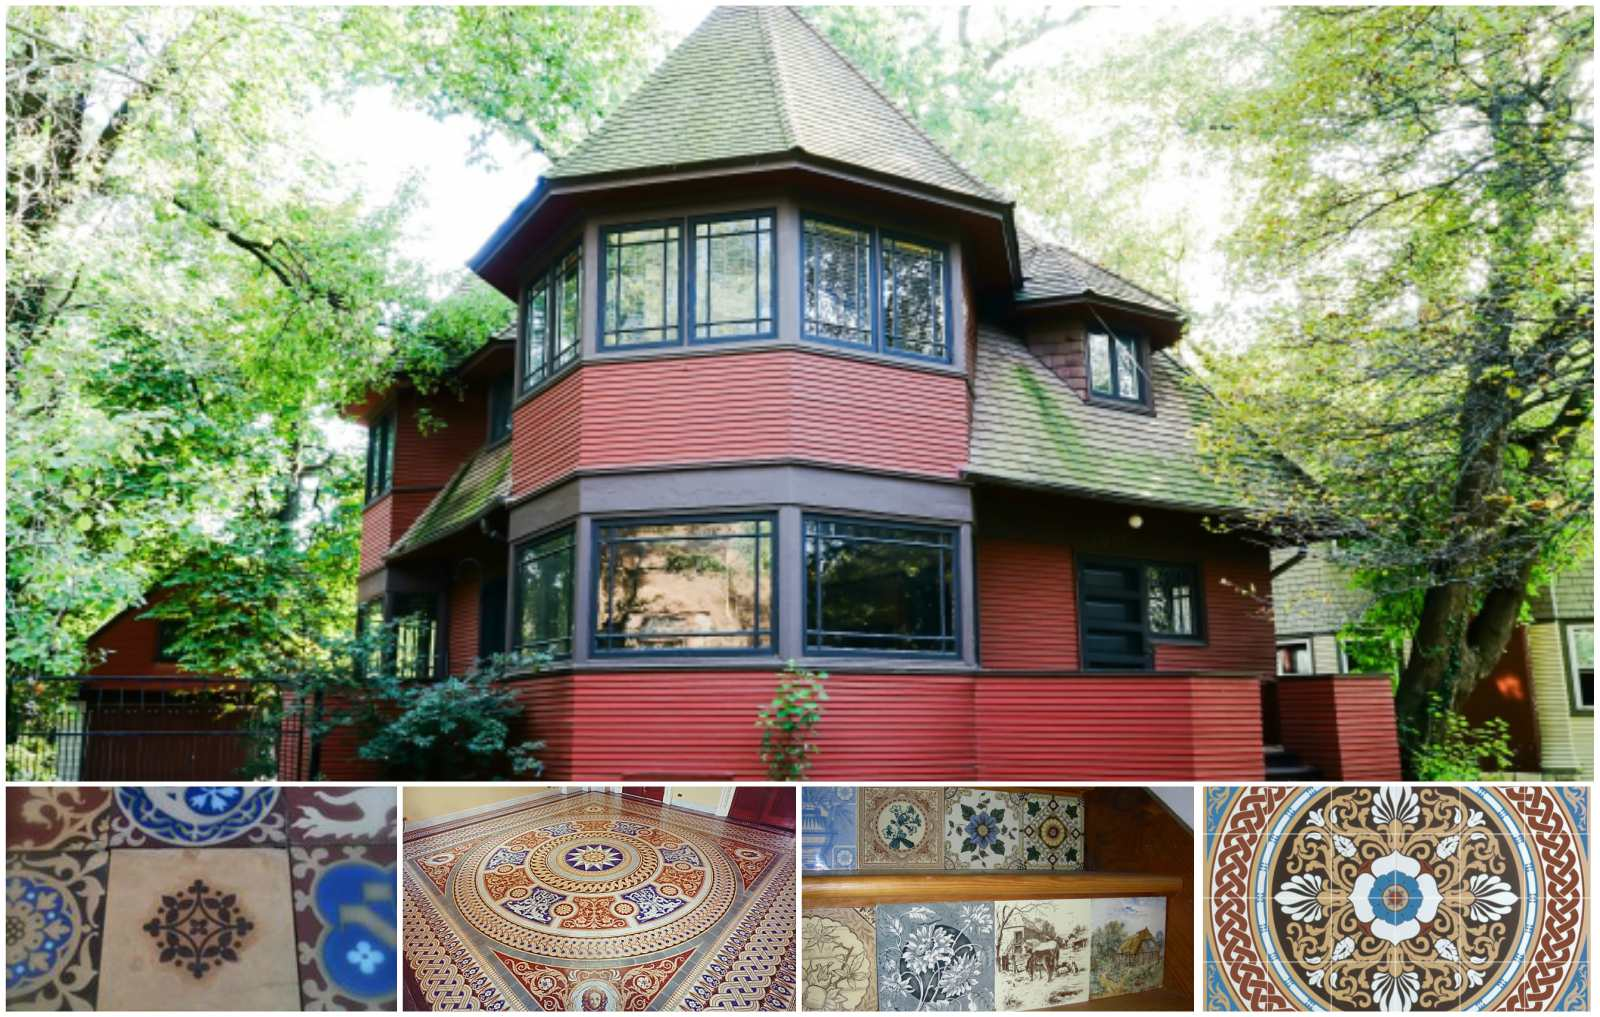 Top: Frank Lloyd Wright Robert P. Parker house (1892).  Bottom, Victorian Floor Tiles: Minton Westminster tiles; Minton tiles, restored inlay, for U.S. Capital; Minton tile designs reproduced for stair risers; Rubble Tile 'Palmerston' screenprinted floor tiles